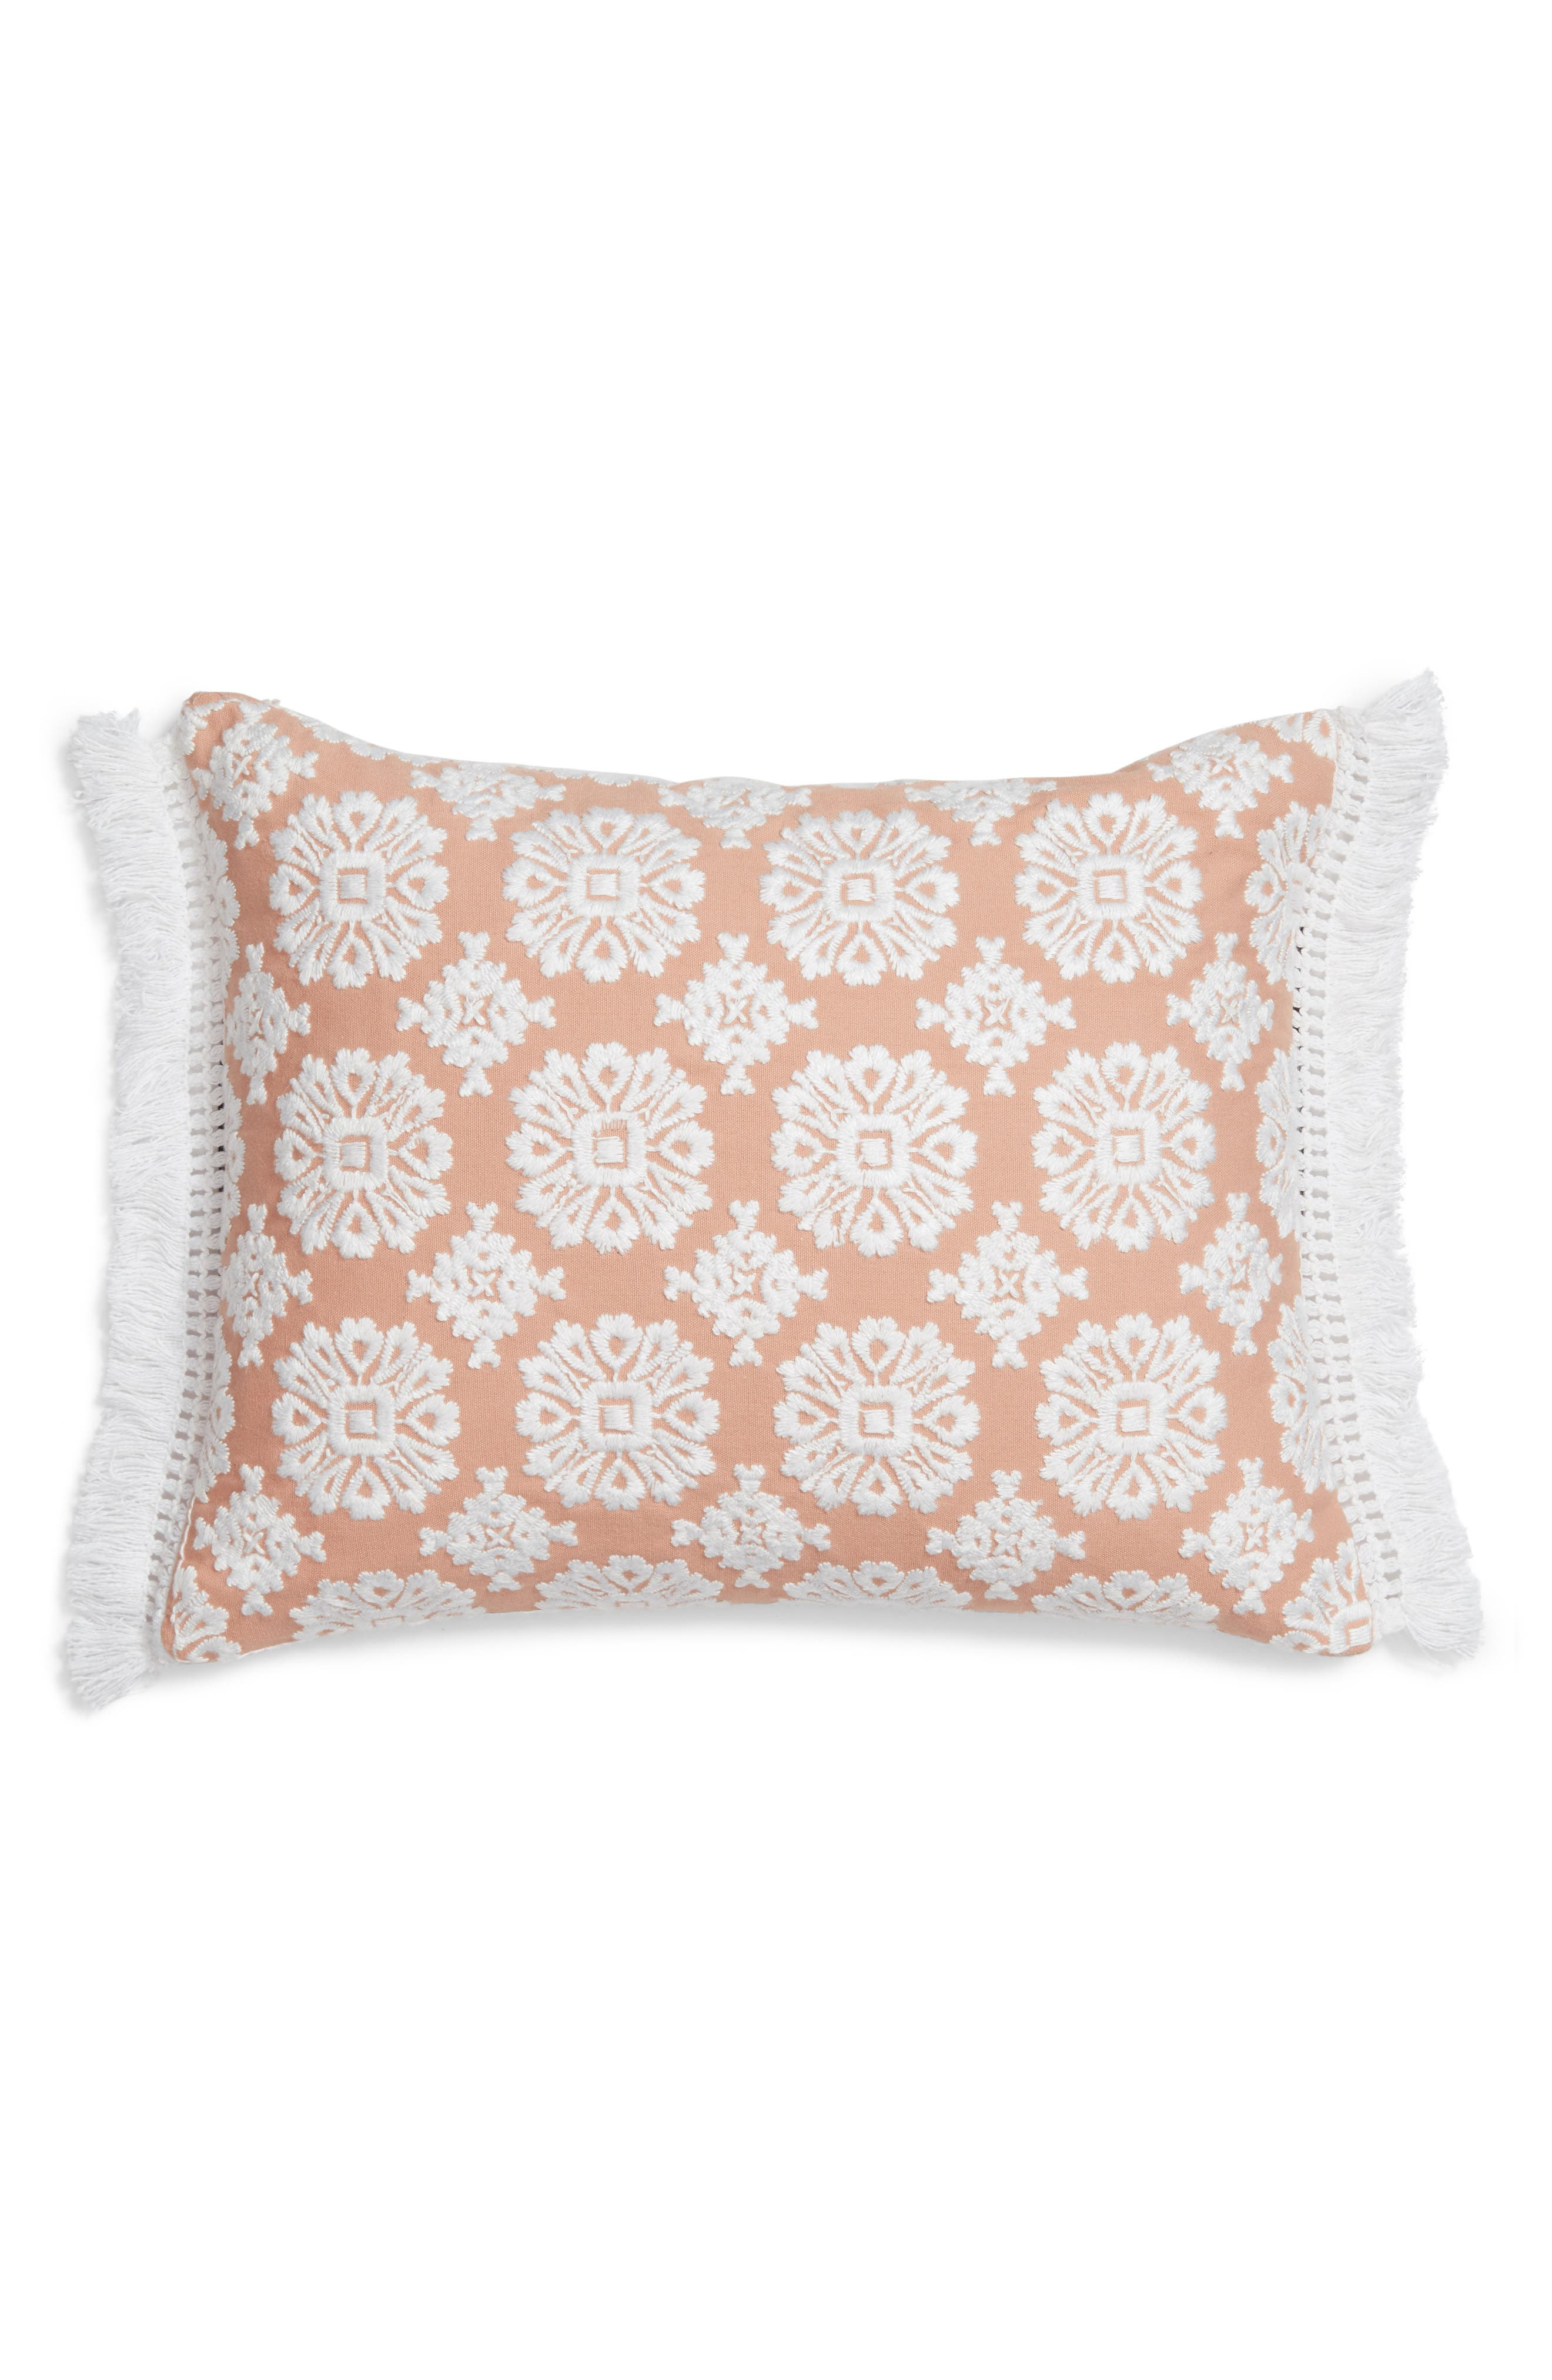 Bree Embroidered Accent Pillow,                         Main,                         color, Blush